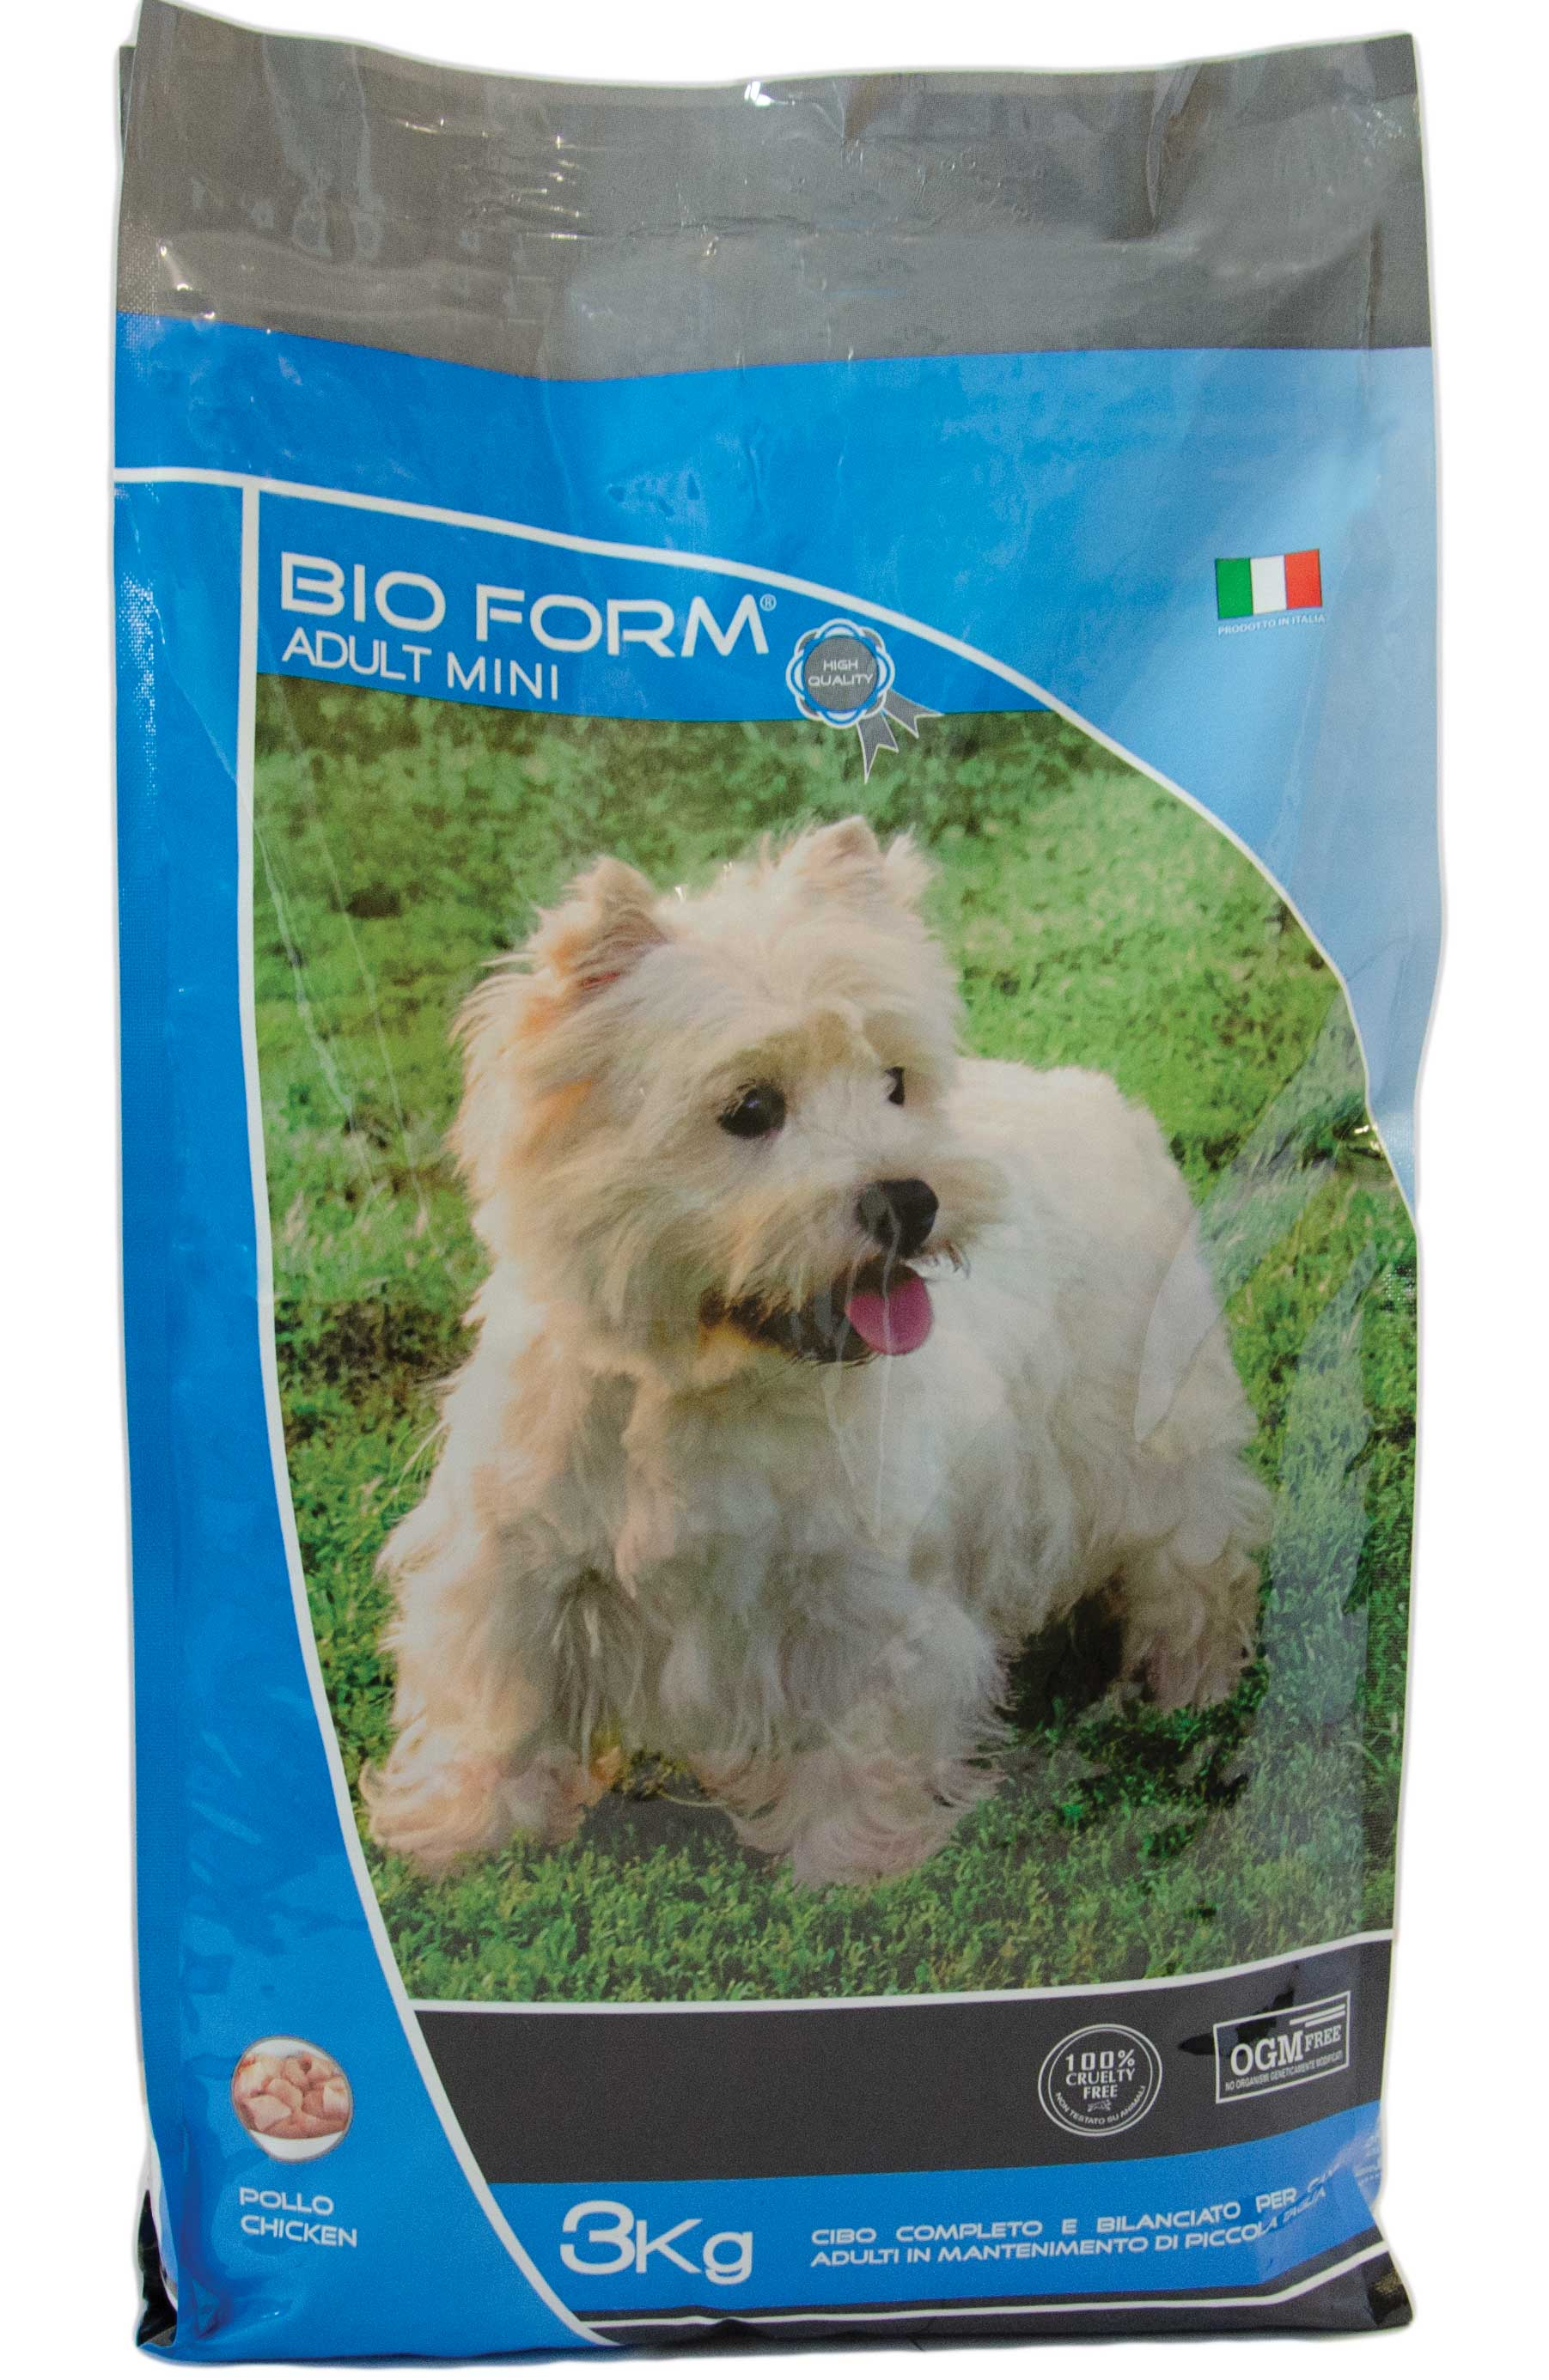 Bioform Adult Mini 3 kg 30/18